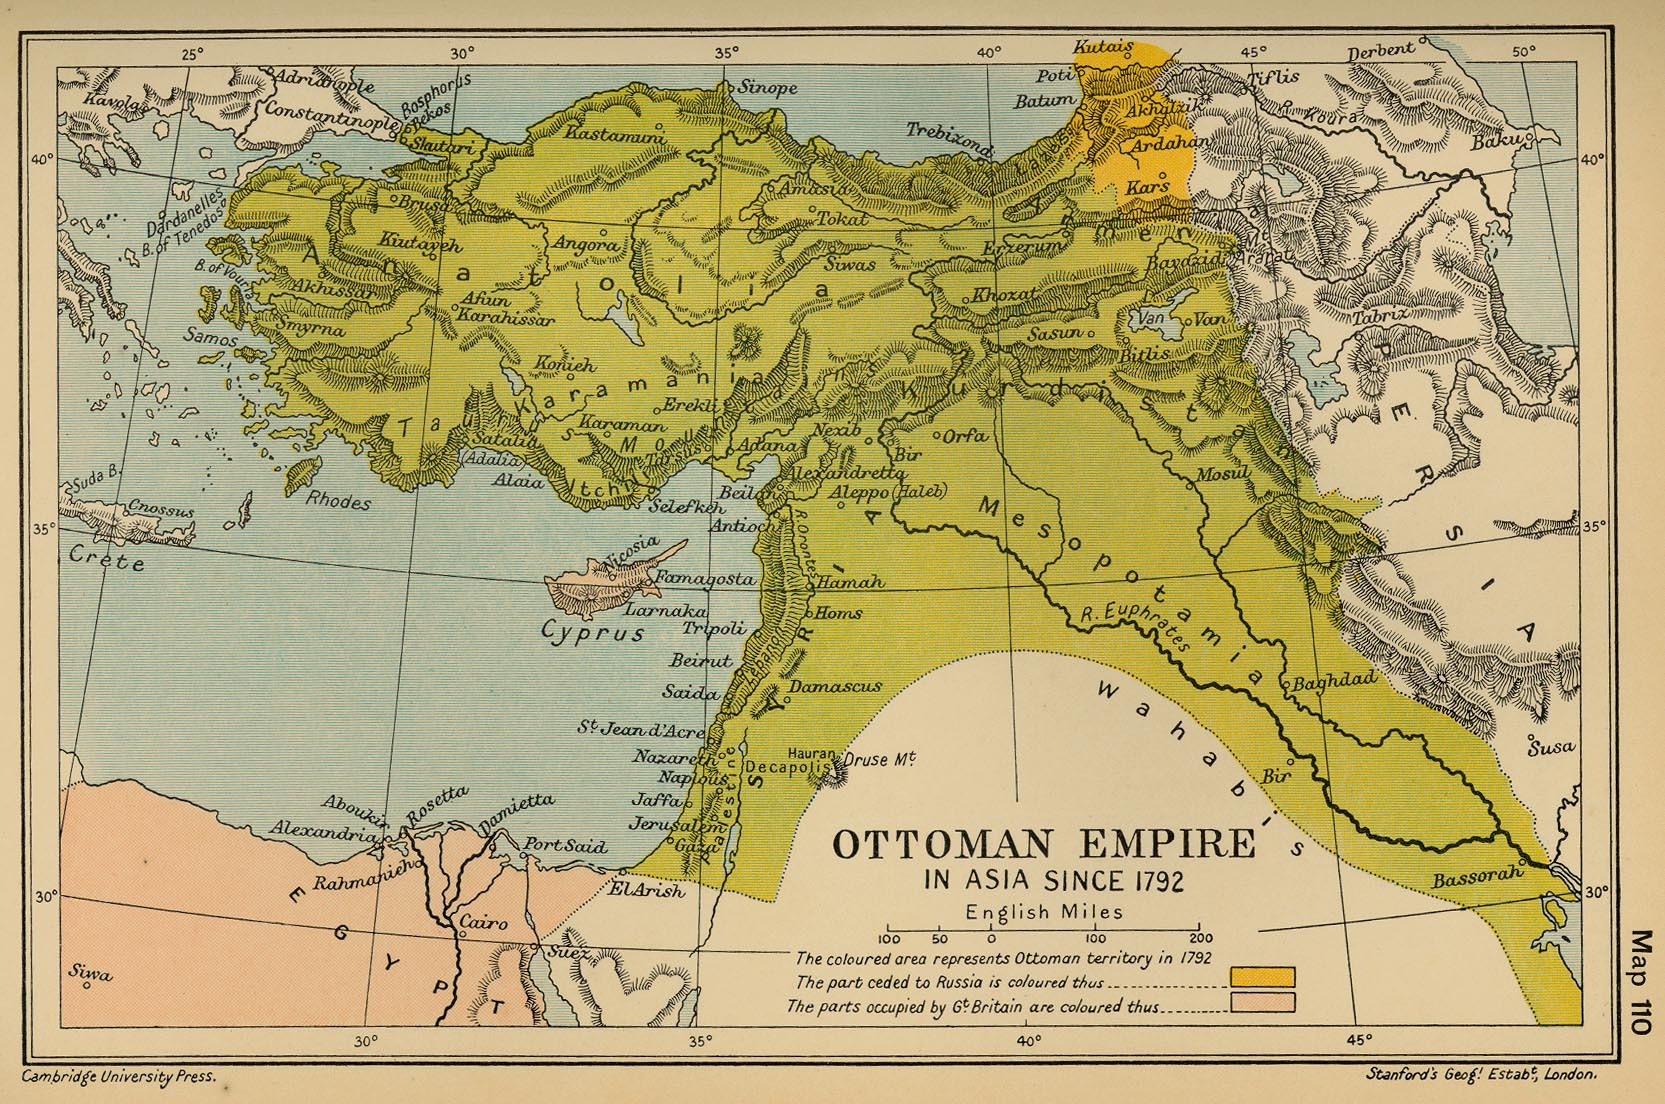 Ottoman Empire in 1792, map from Univ. of Texas library